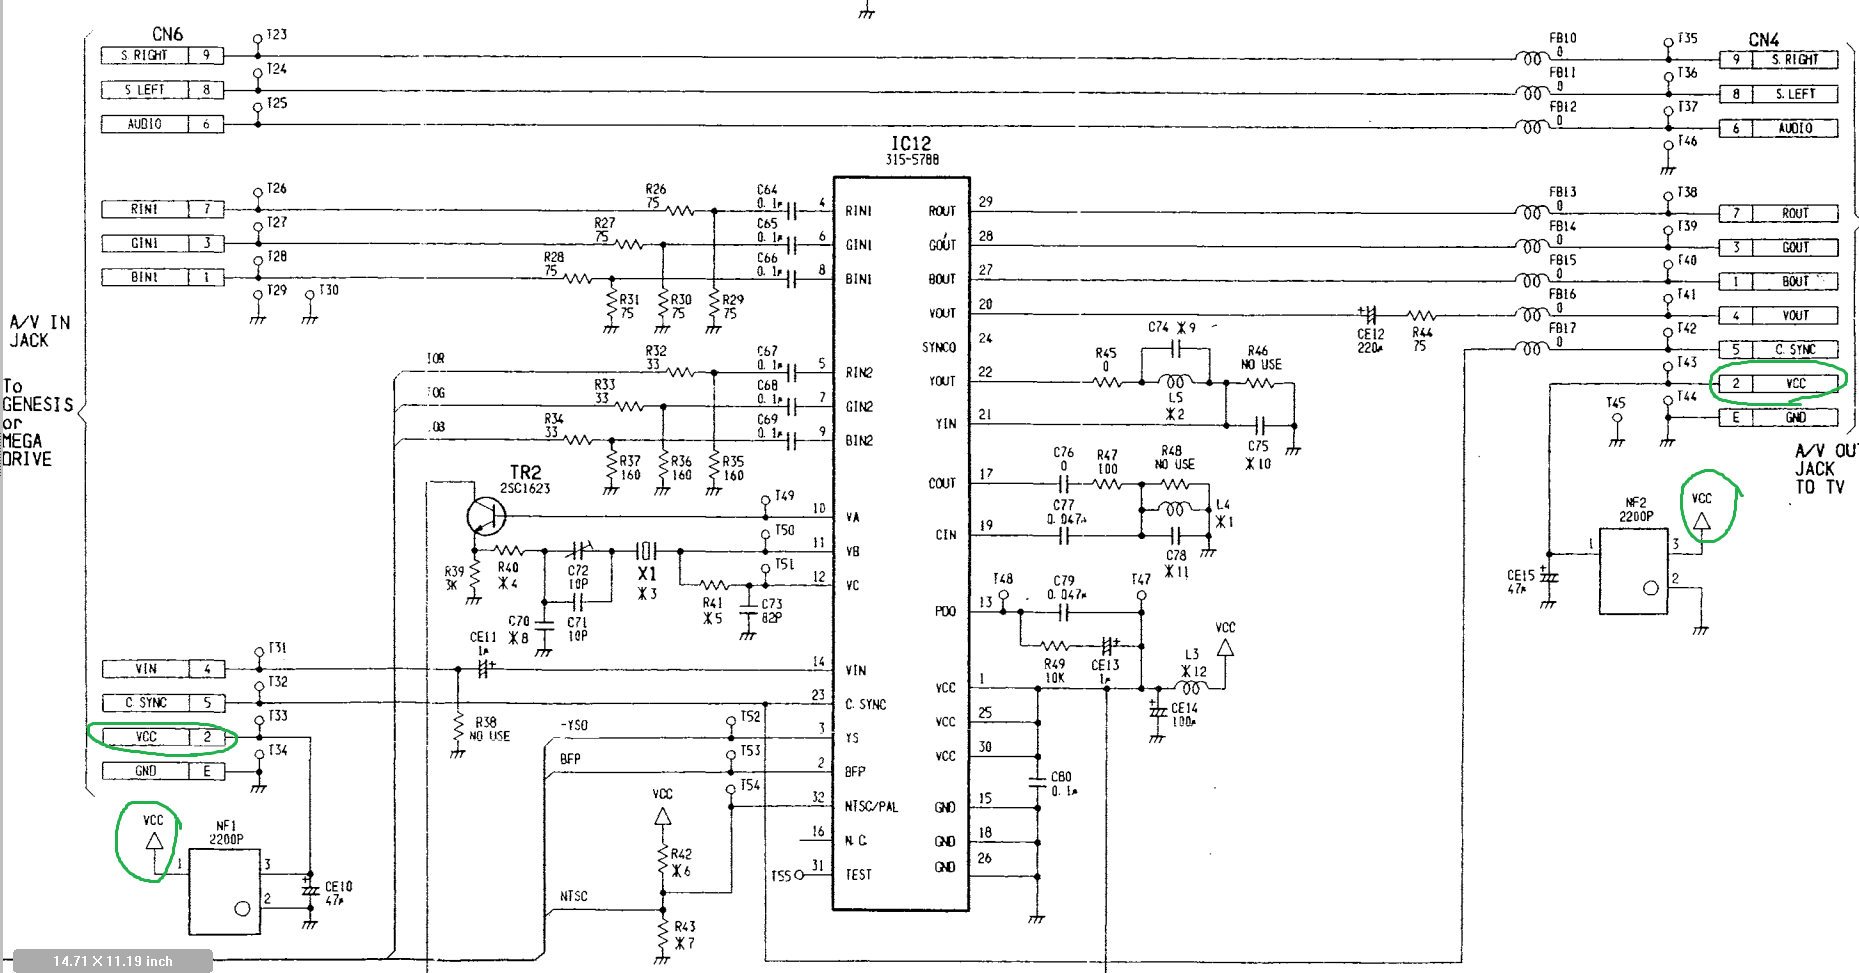 32x Retrorgb S Video Adapter To Vga Schematic Vcc Is The Internal 5v Rail Avoid Those 2220p Things As They Are Just Emi Filters So You Can Consider Them Shorts Click For Full Sized